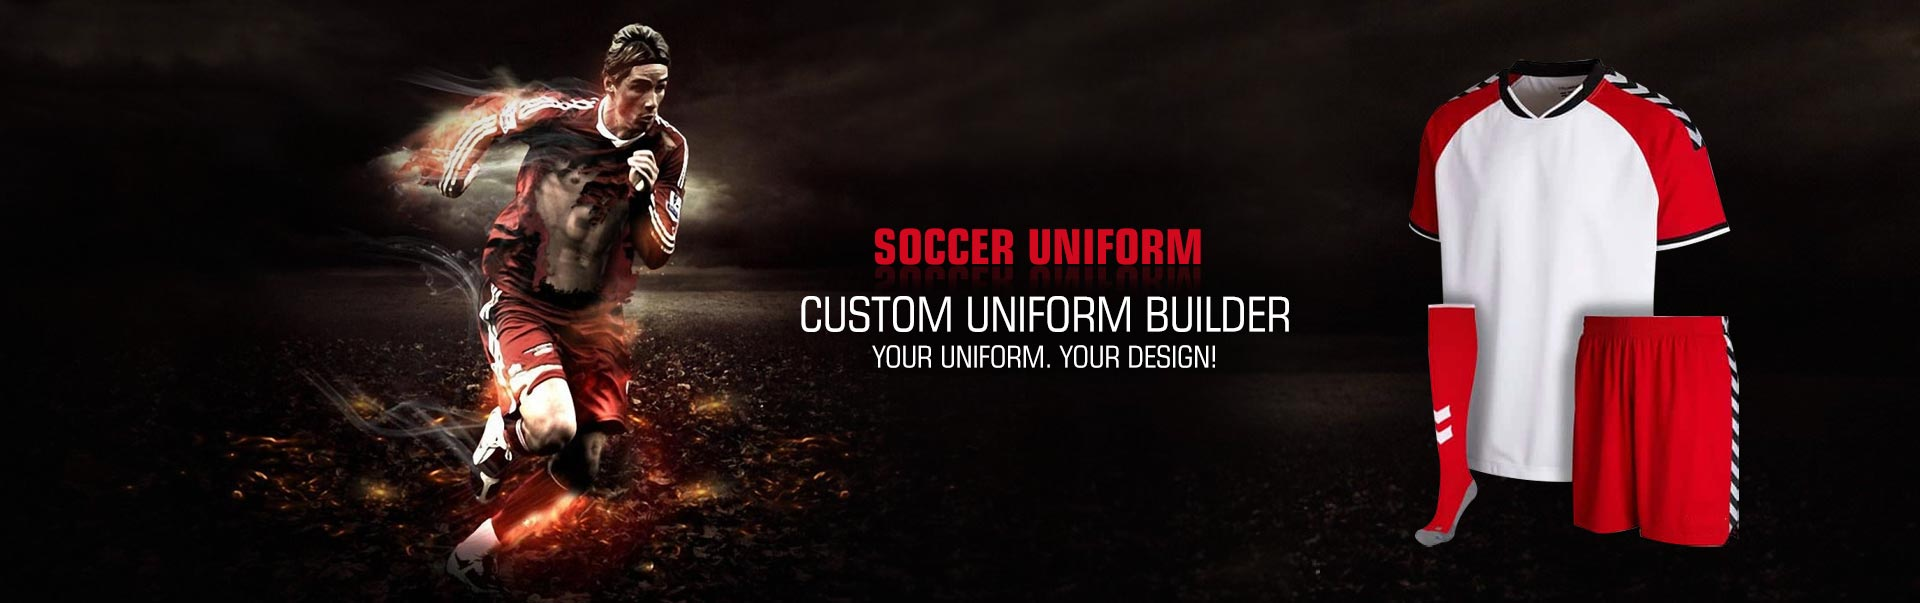 Soccer Uniform Wholesaler, Suppliers in Pittsburgh